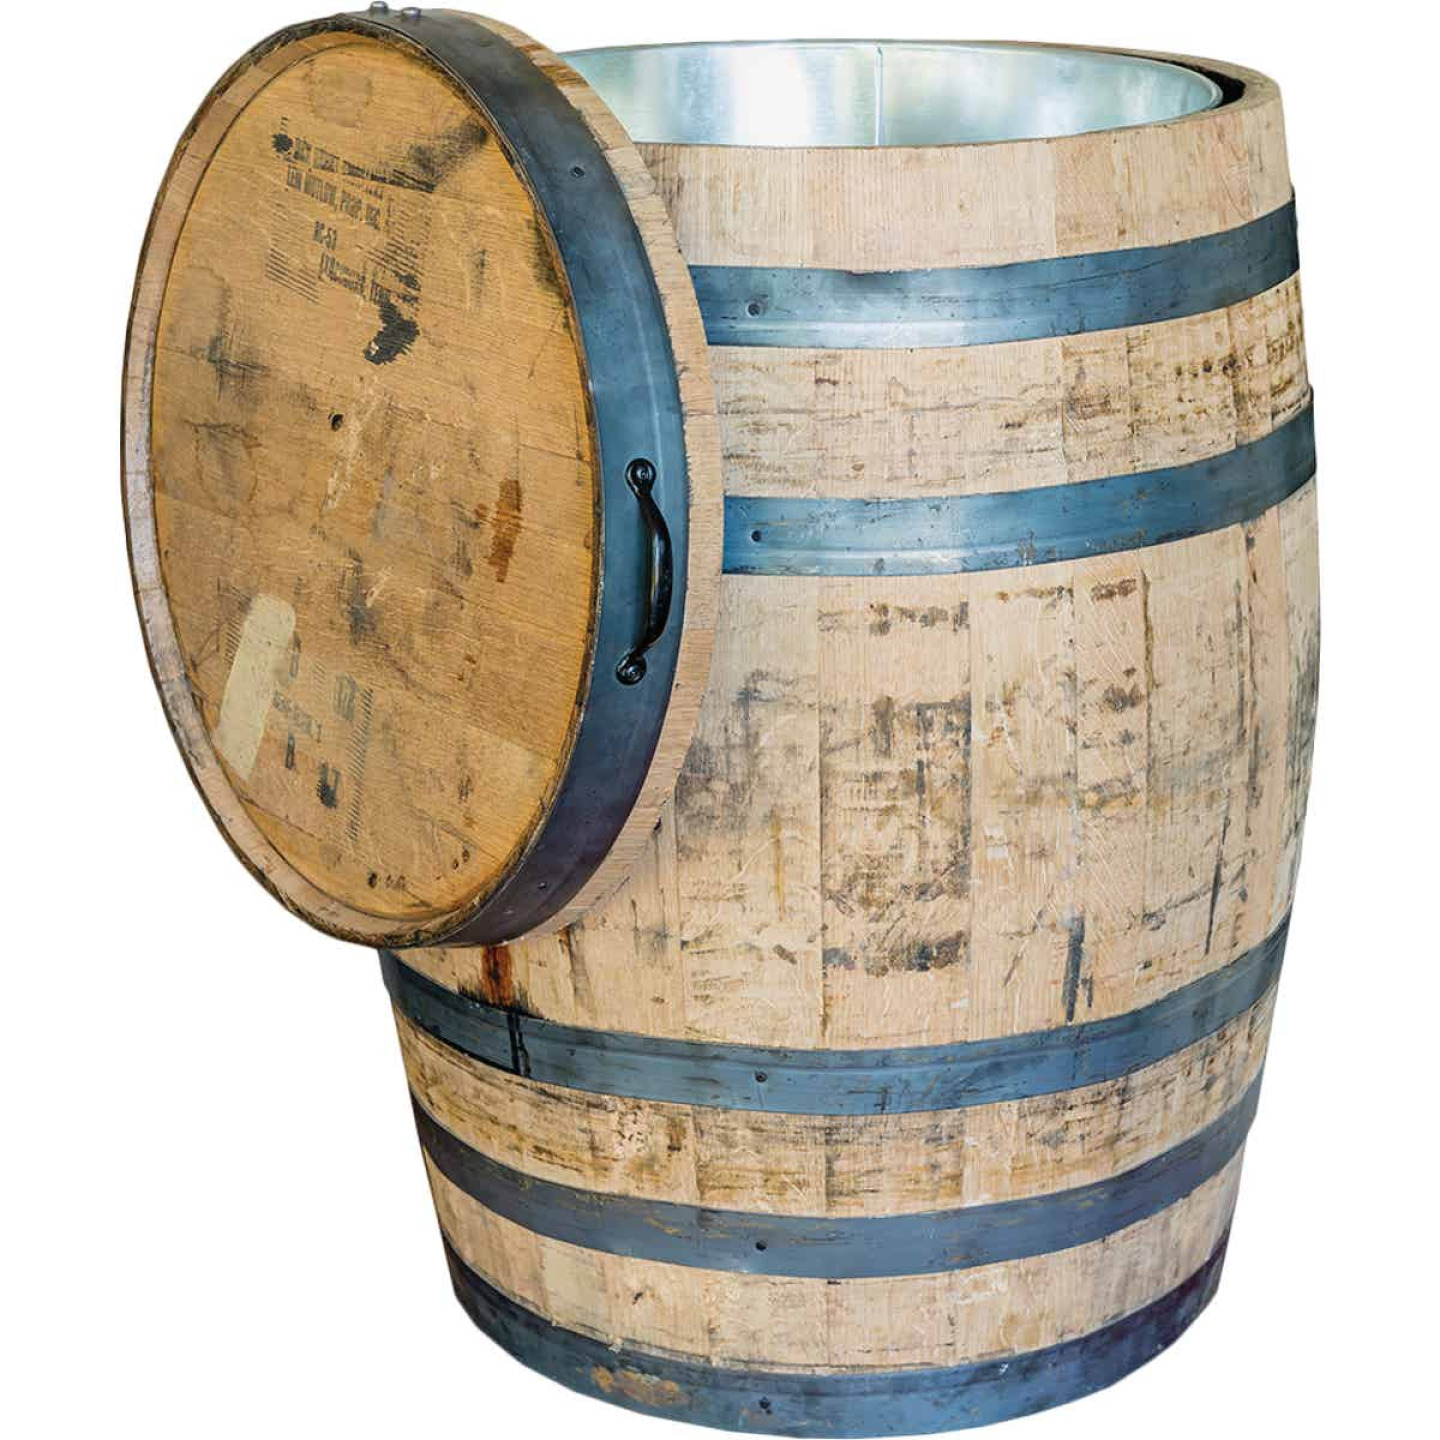 Real Wood Products 26 In. x 35 In. Oak Multi-Use Whole Whiskey Barrel Image 1